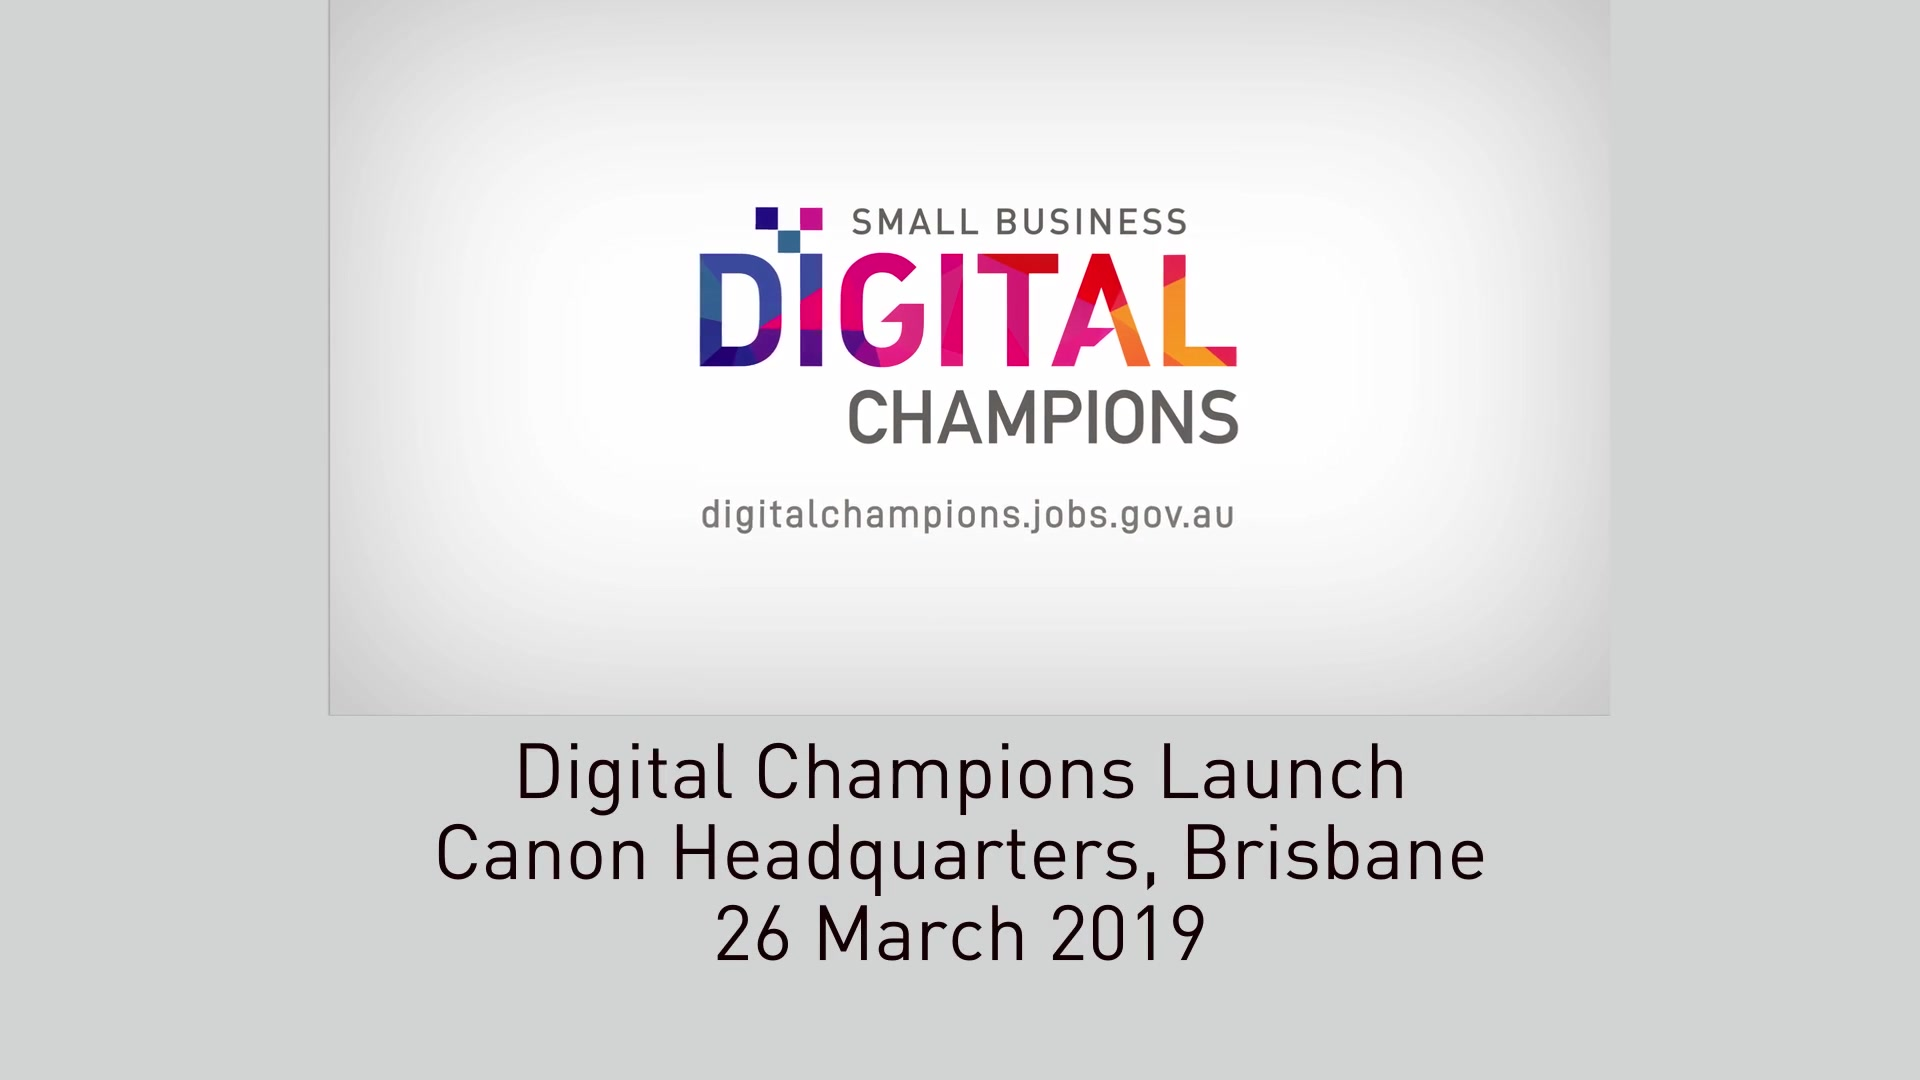 A still frame from the video Small Business Digital Champions: Digital Champions Launch